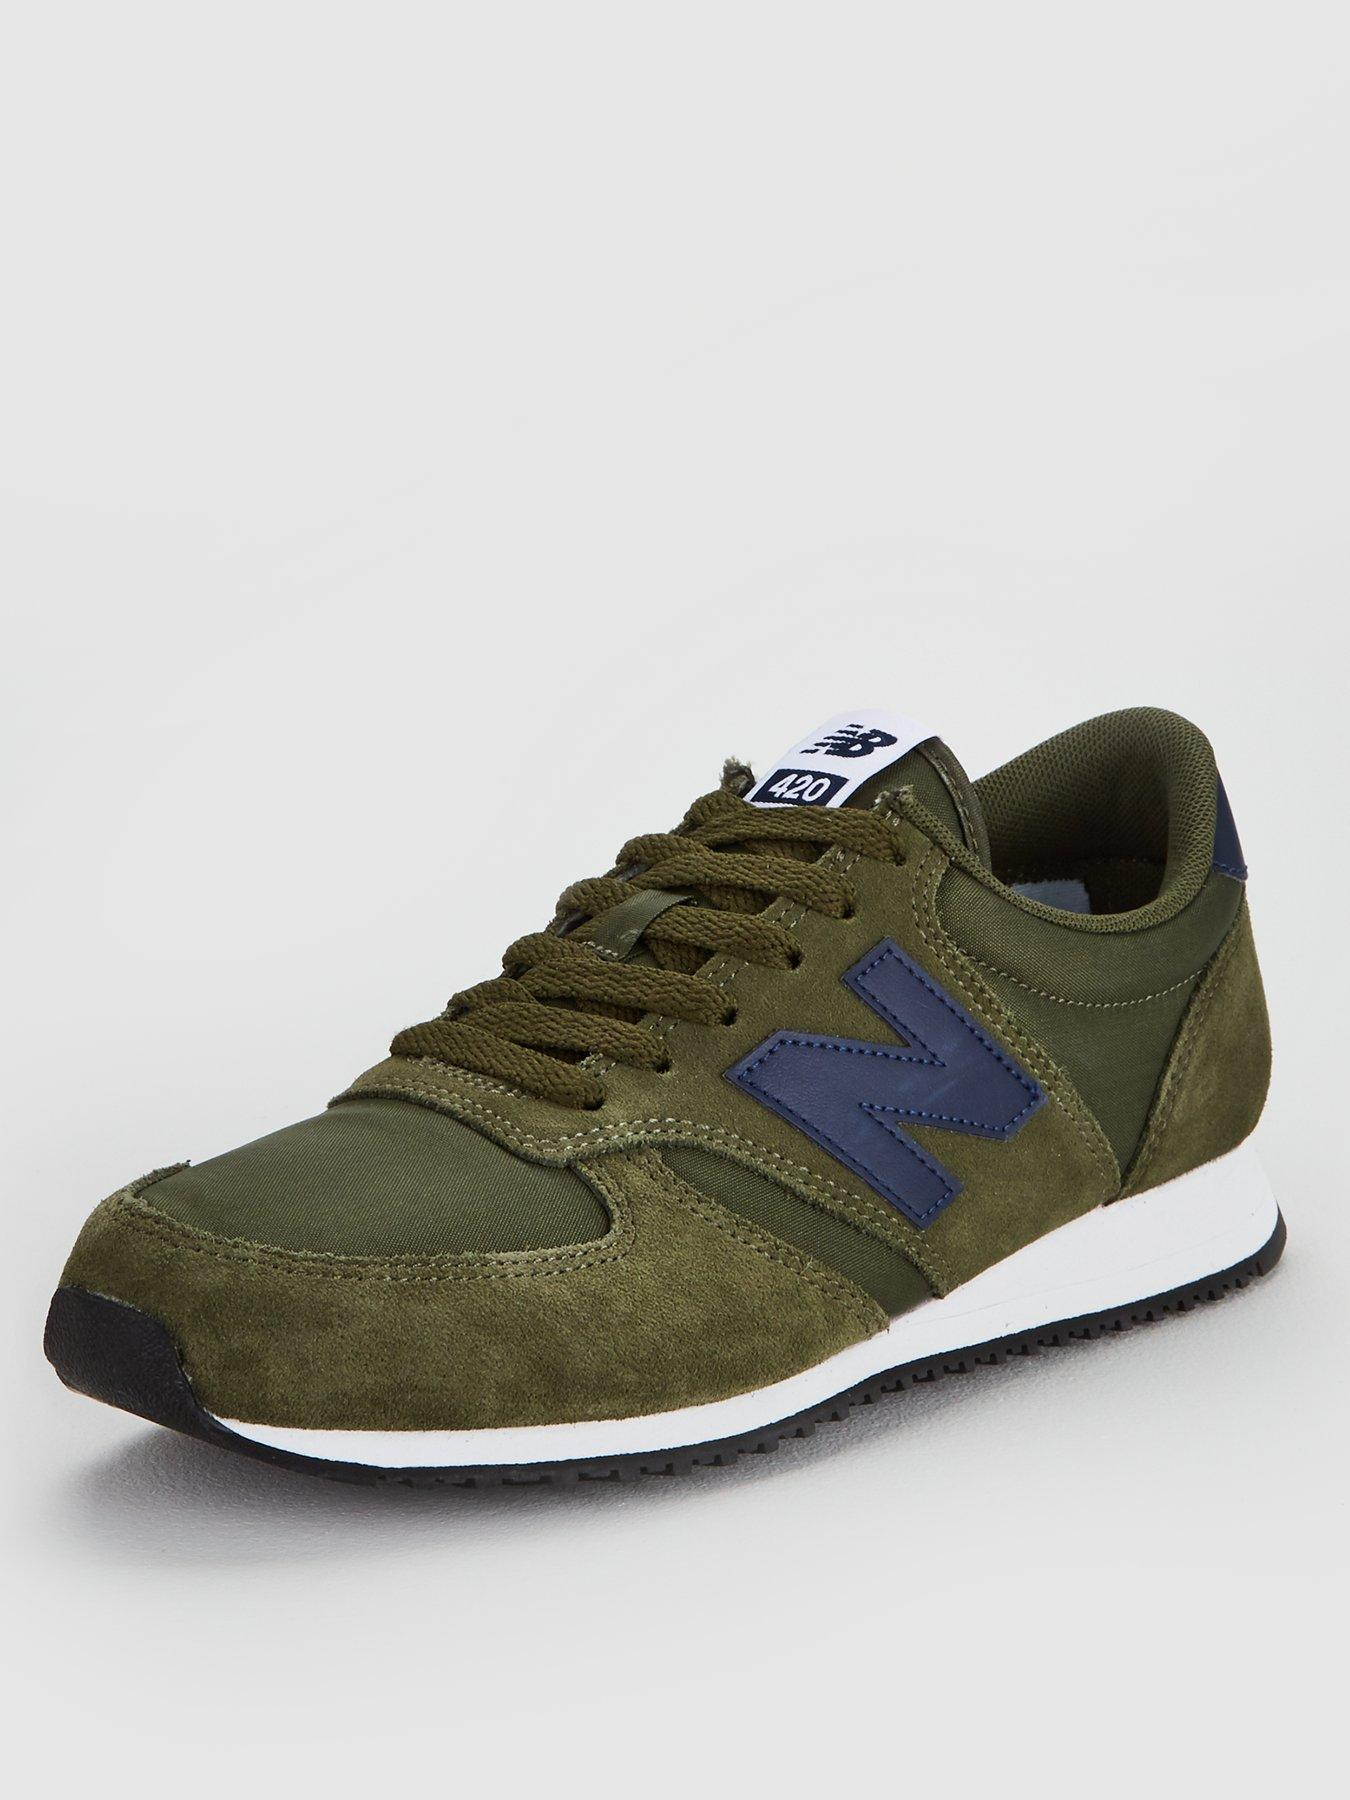 012cf19d19b1 buy simple and exquisite 2018 new balance white brown khaki coffee cm1700co  mens fpdt88 shoes 69552587 5238d 460be  where can i buy new balance 420  1dee1 ...